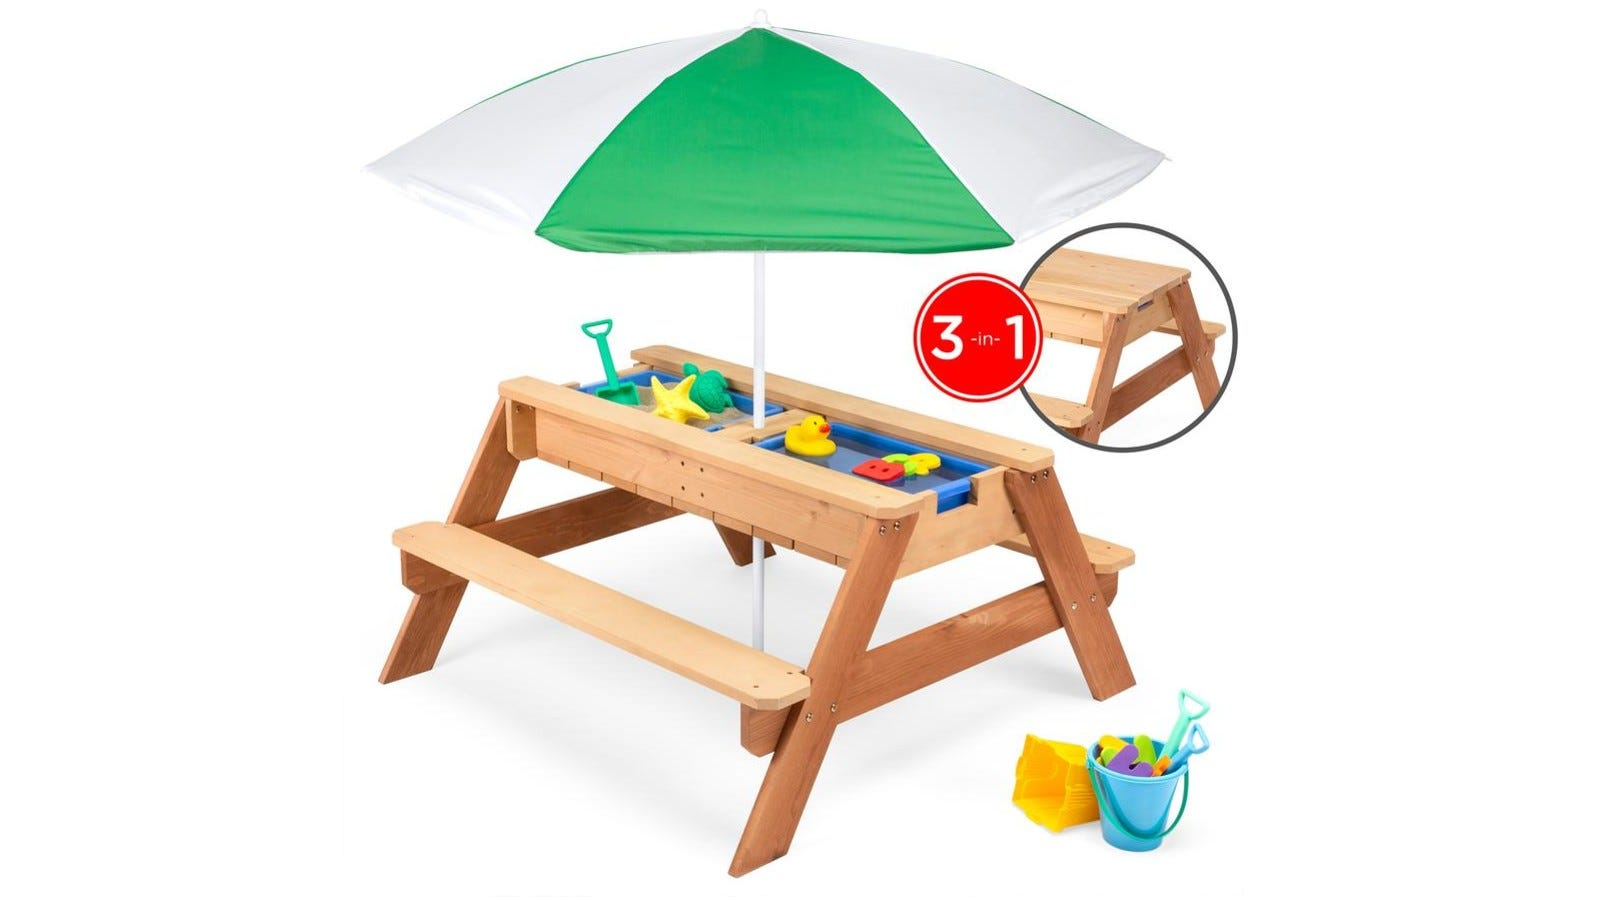 picnic table with umbrella and middle panel for sand and water